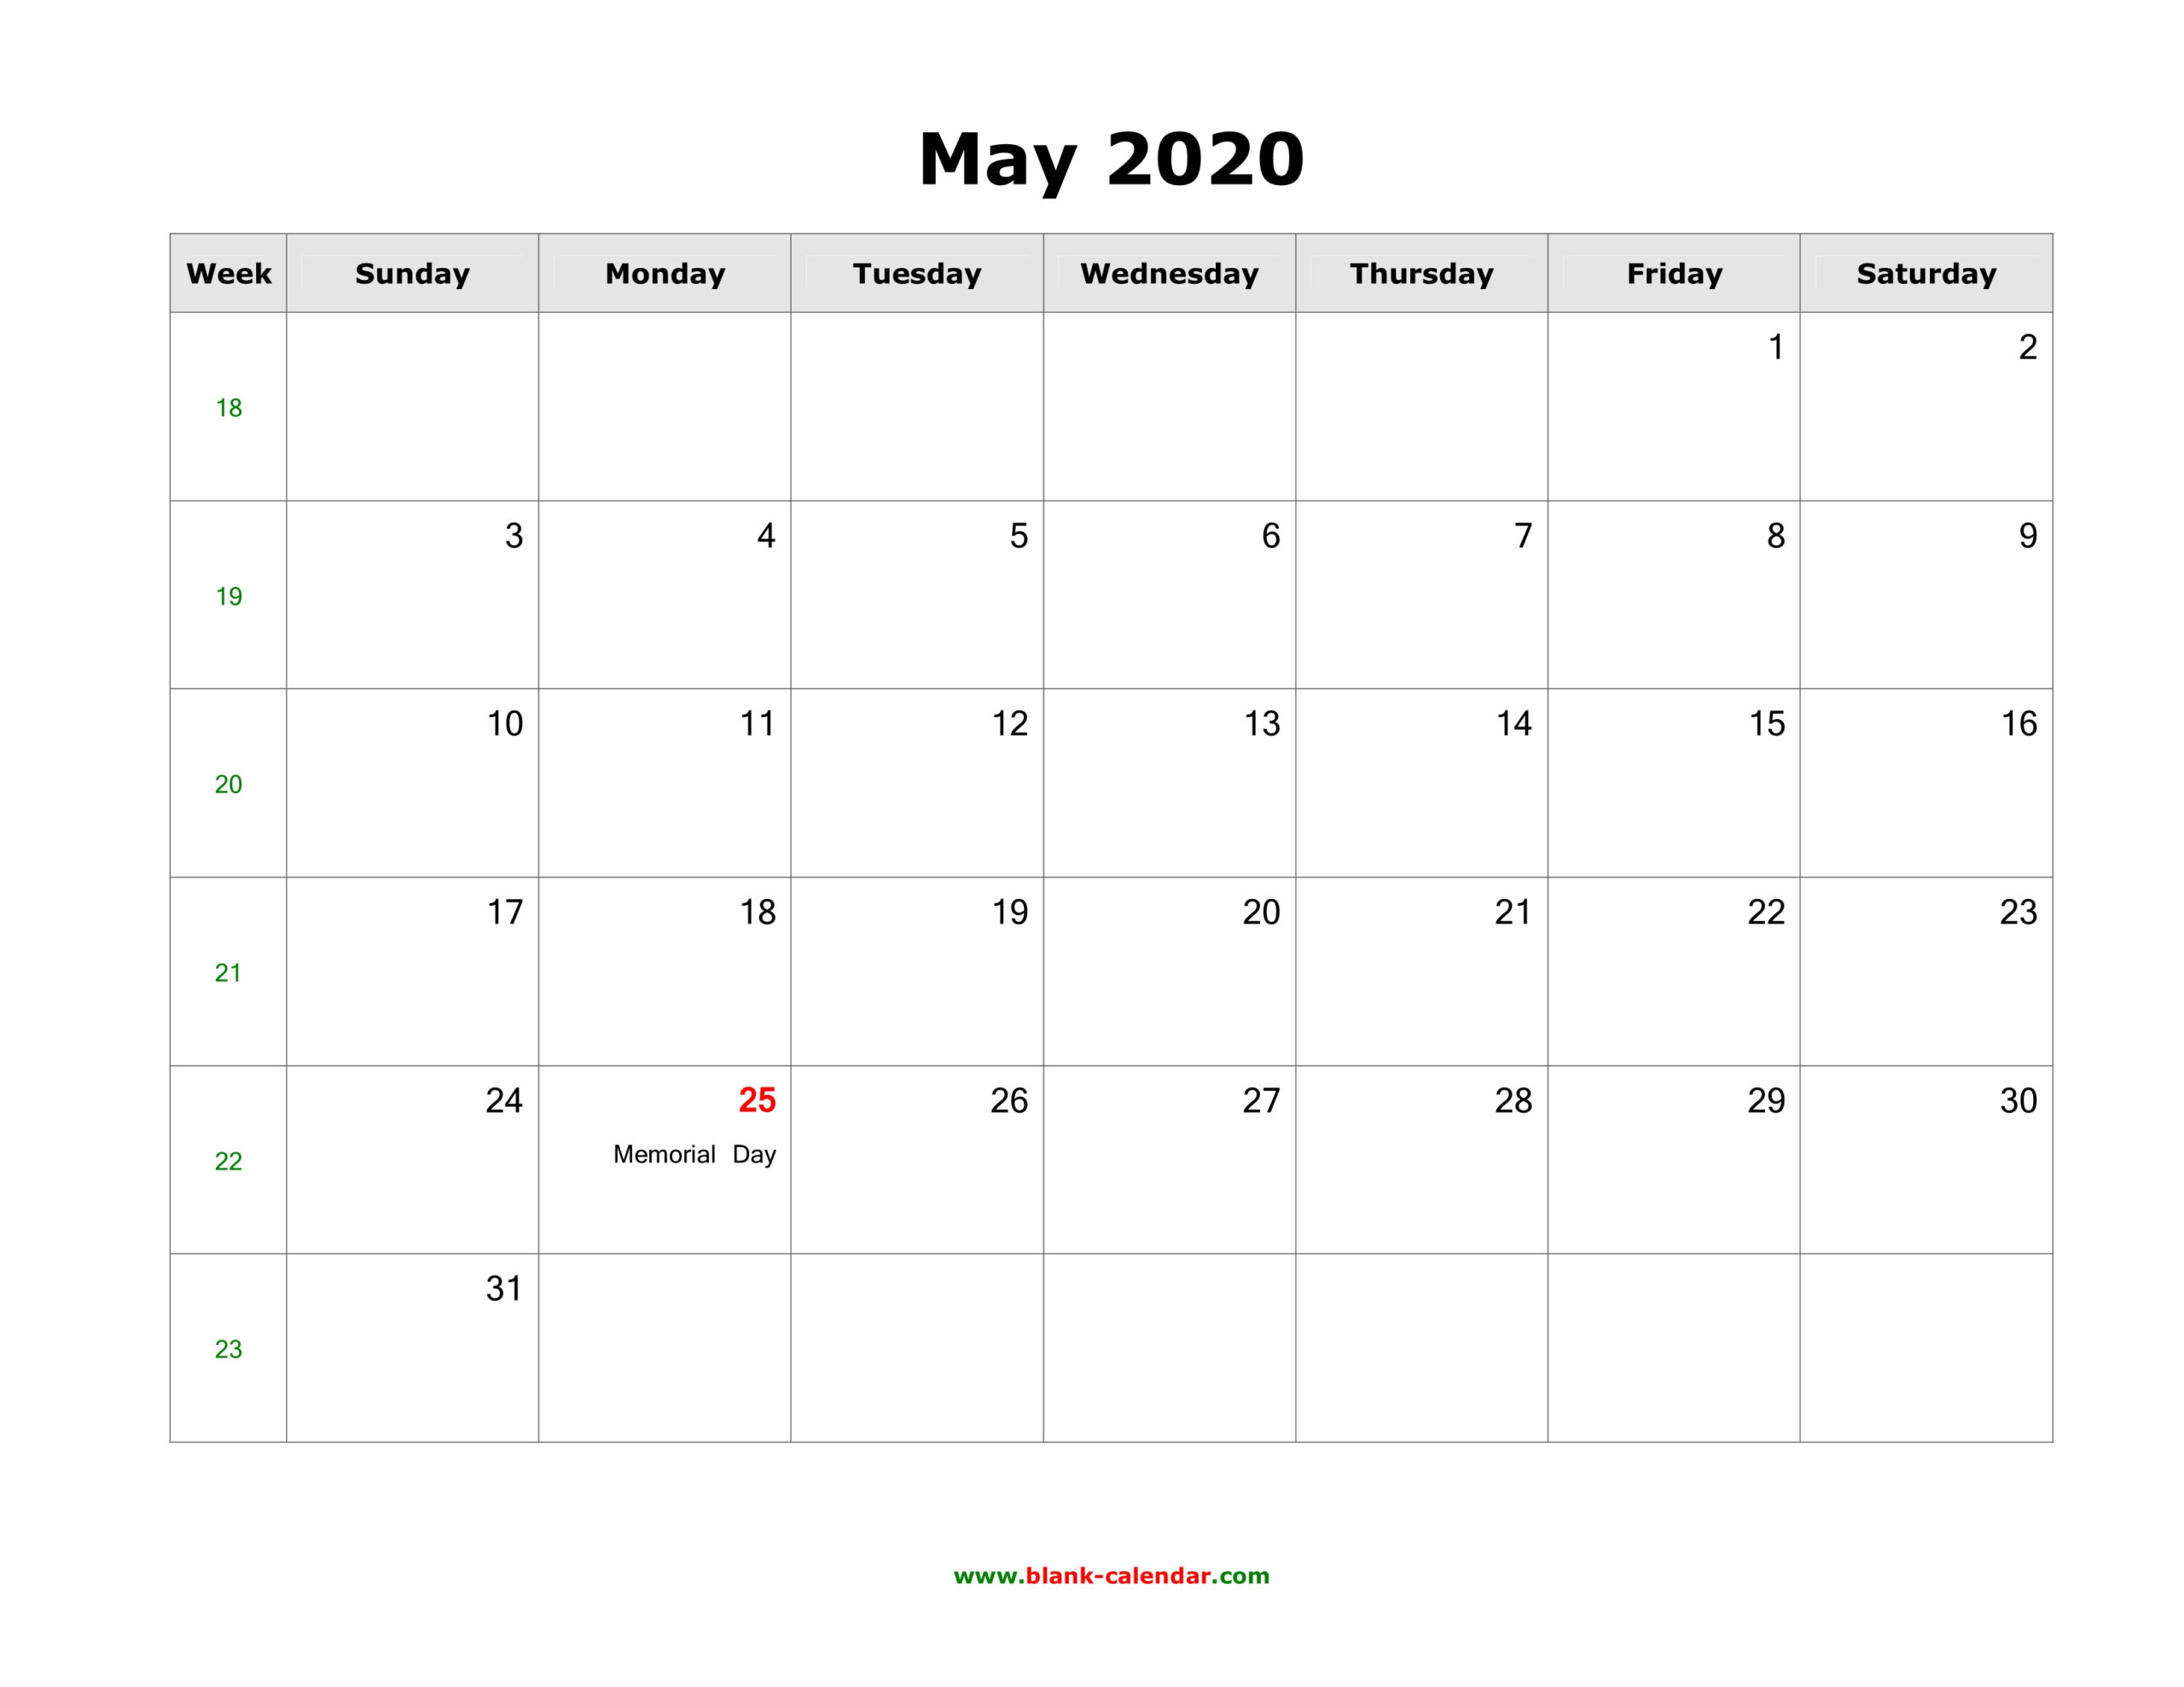 May 2020 Blank Calendar | Free Download Calendar Templates